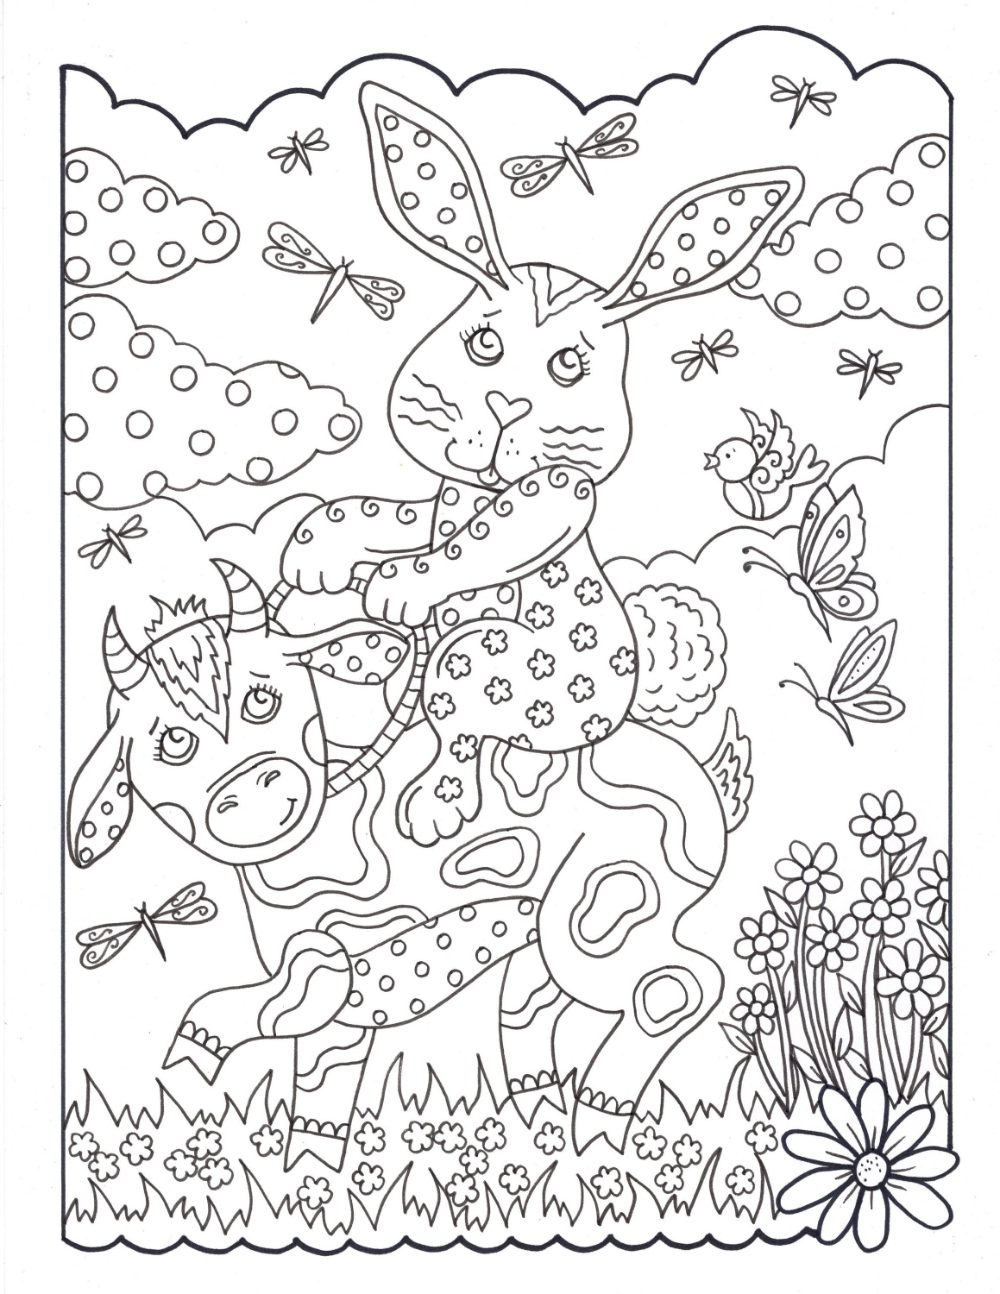 Bunny Love 10 Digital Coloring Pages Downloads Digi Stamps Etsy In 2020 Coloring Pages Digi Stamps Coloring Books